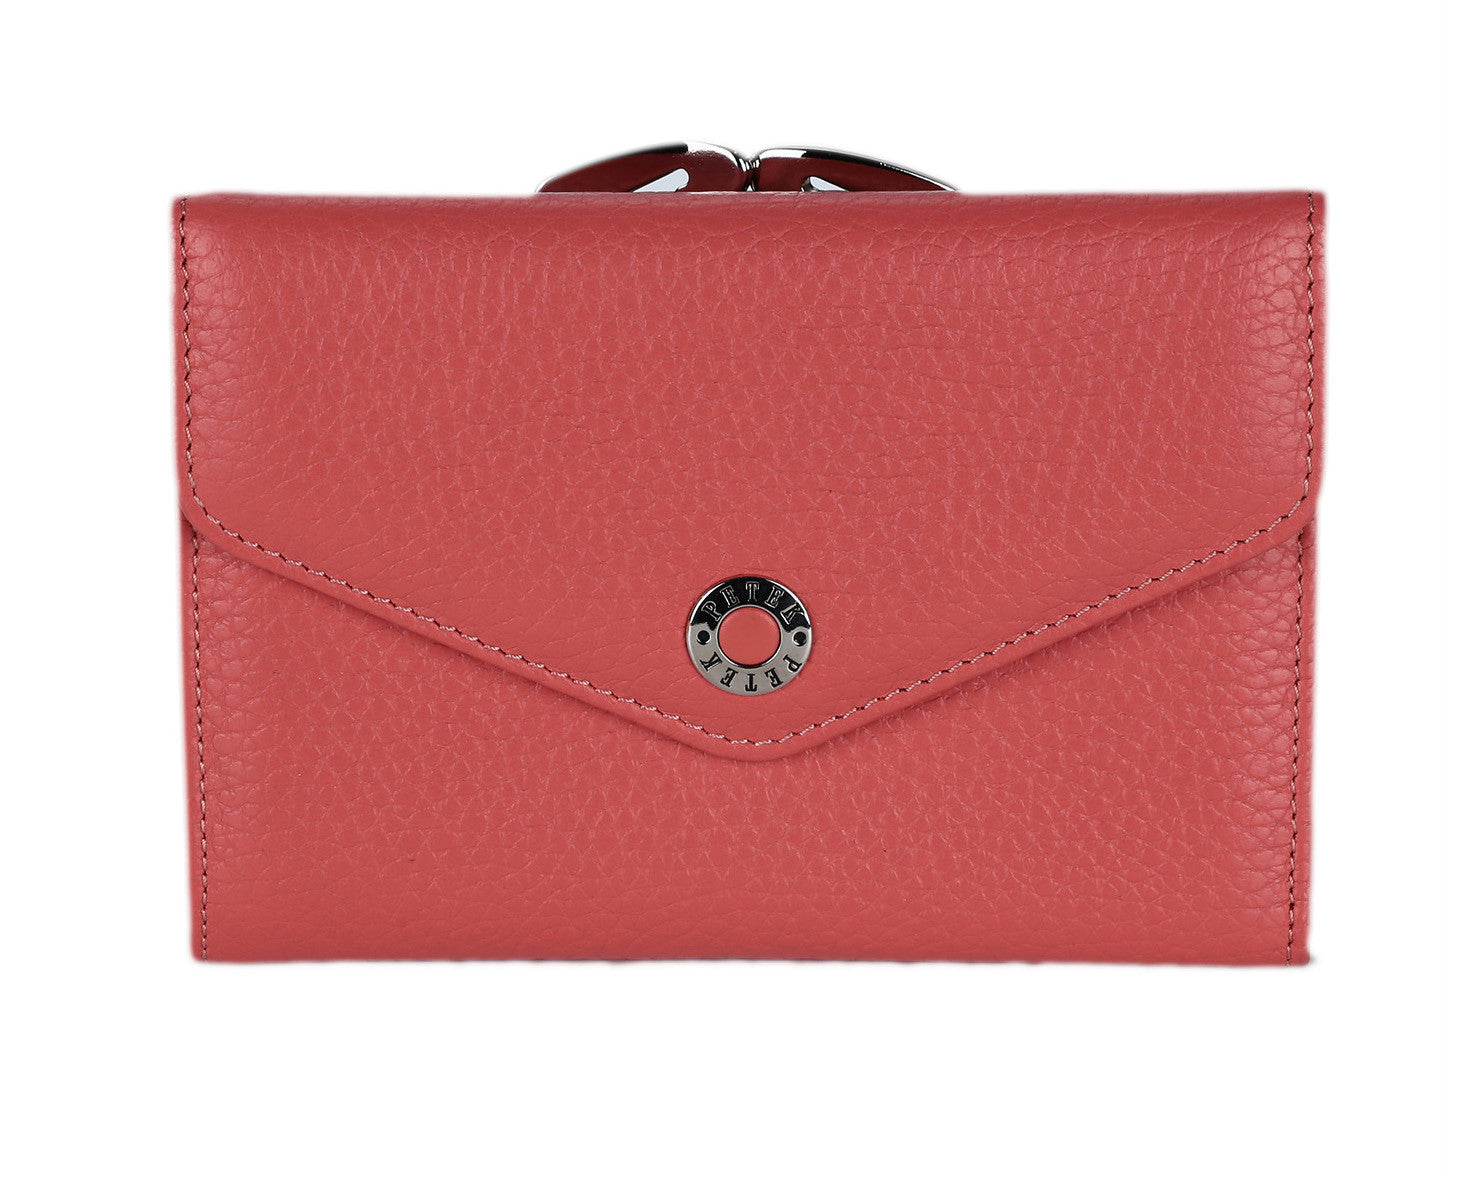 308 Pomegranate, Petek 1855 Women's Leather Wallet